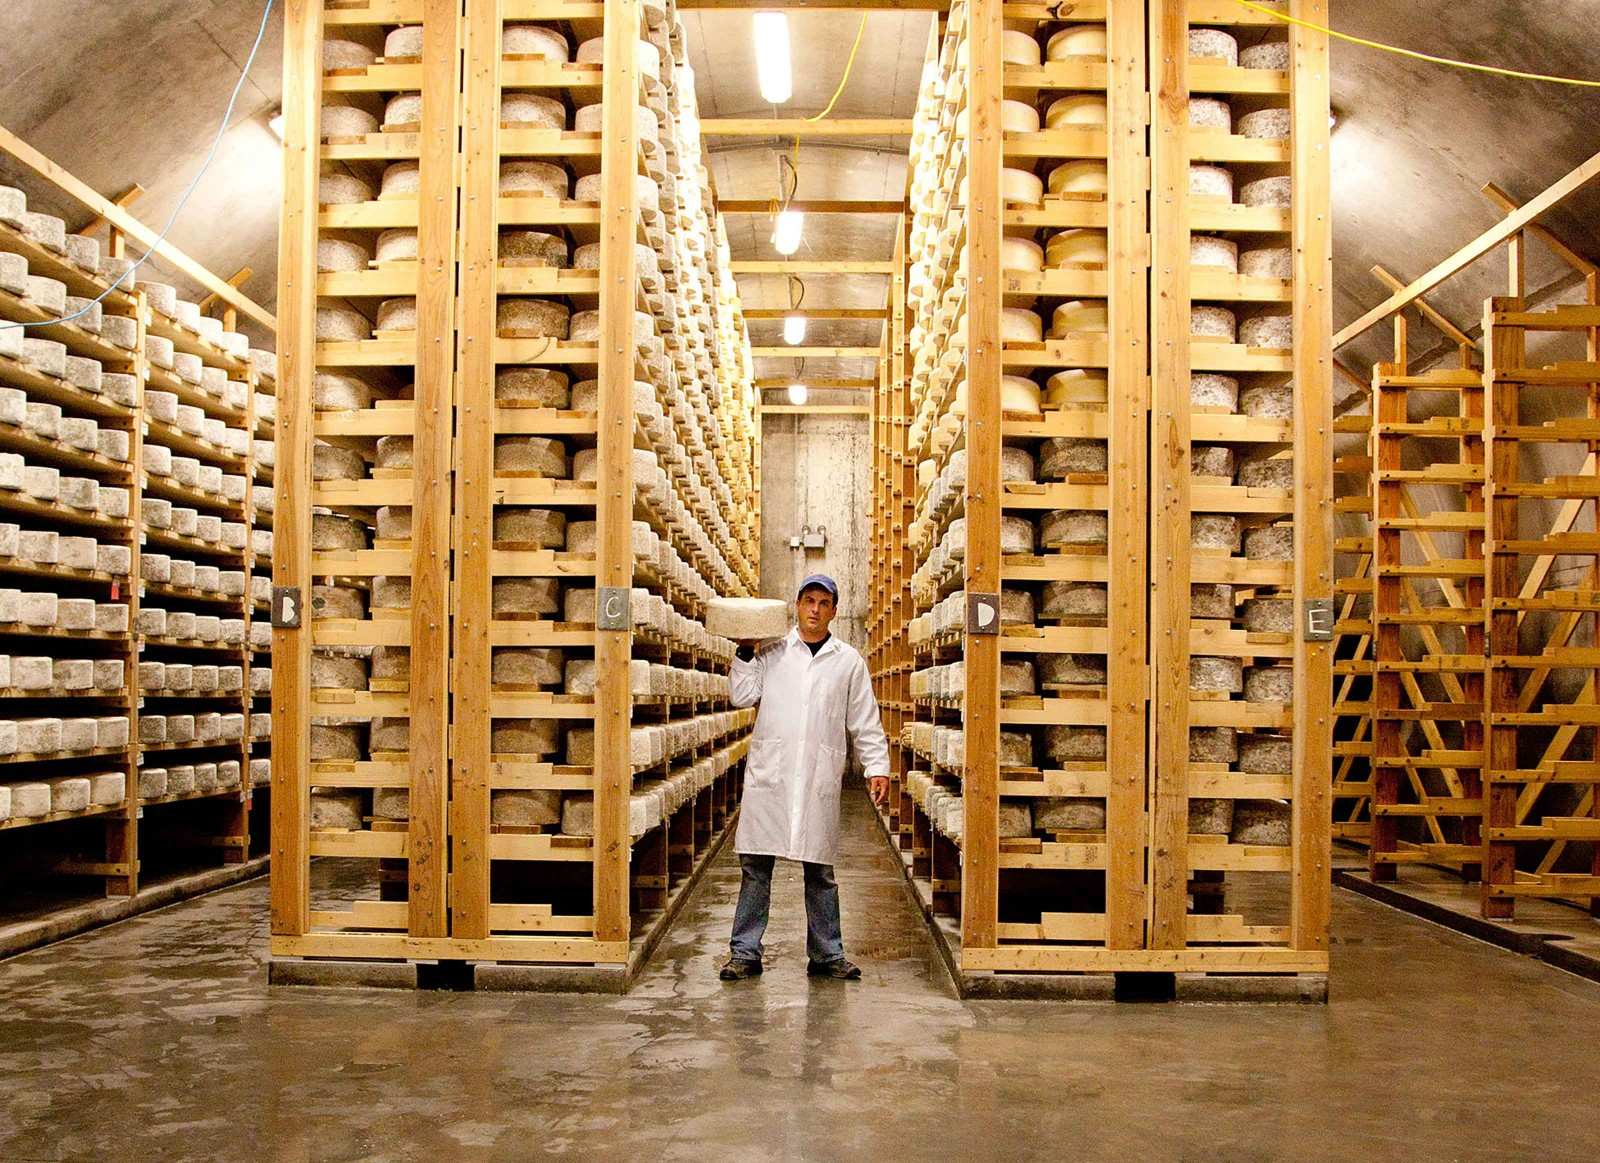 In the cellars at Jasper Hill Farm, cheese from their own creamery and others around the area ripen. The shared space, equipment and collaborative ethos allow many cheesemakers, large and small, to exist in the community.